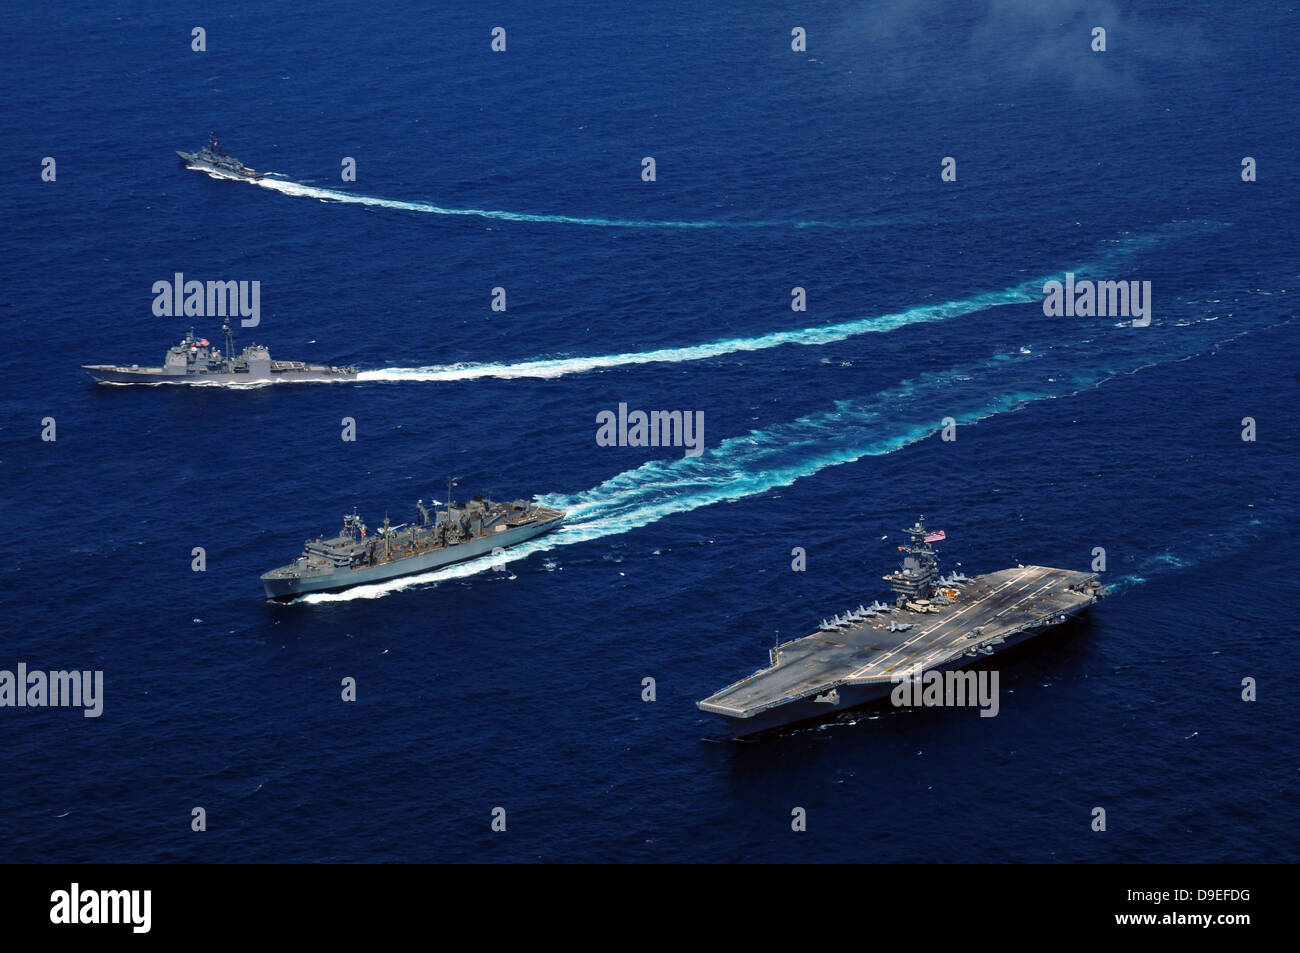 The USS Bunker Hill, the USNS Rainier, and the BAP Carvajal break away from the aircraft carrier USS Carl Vinson - Stock Image